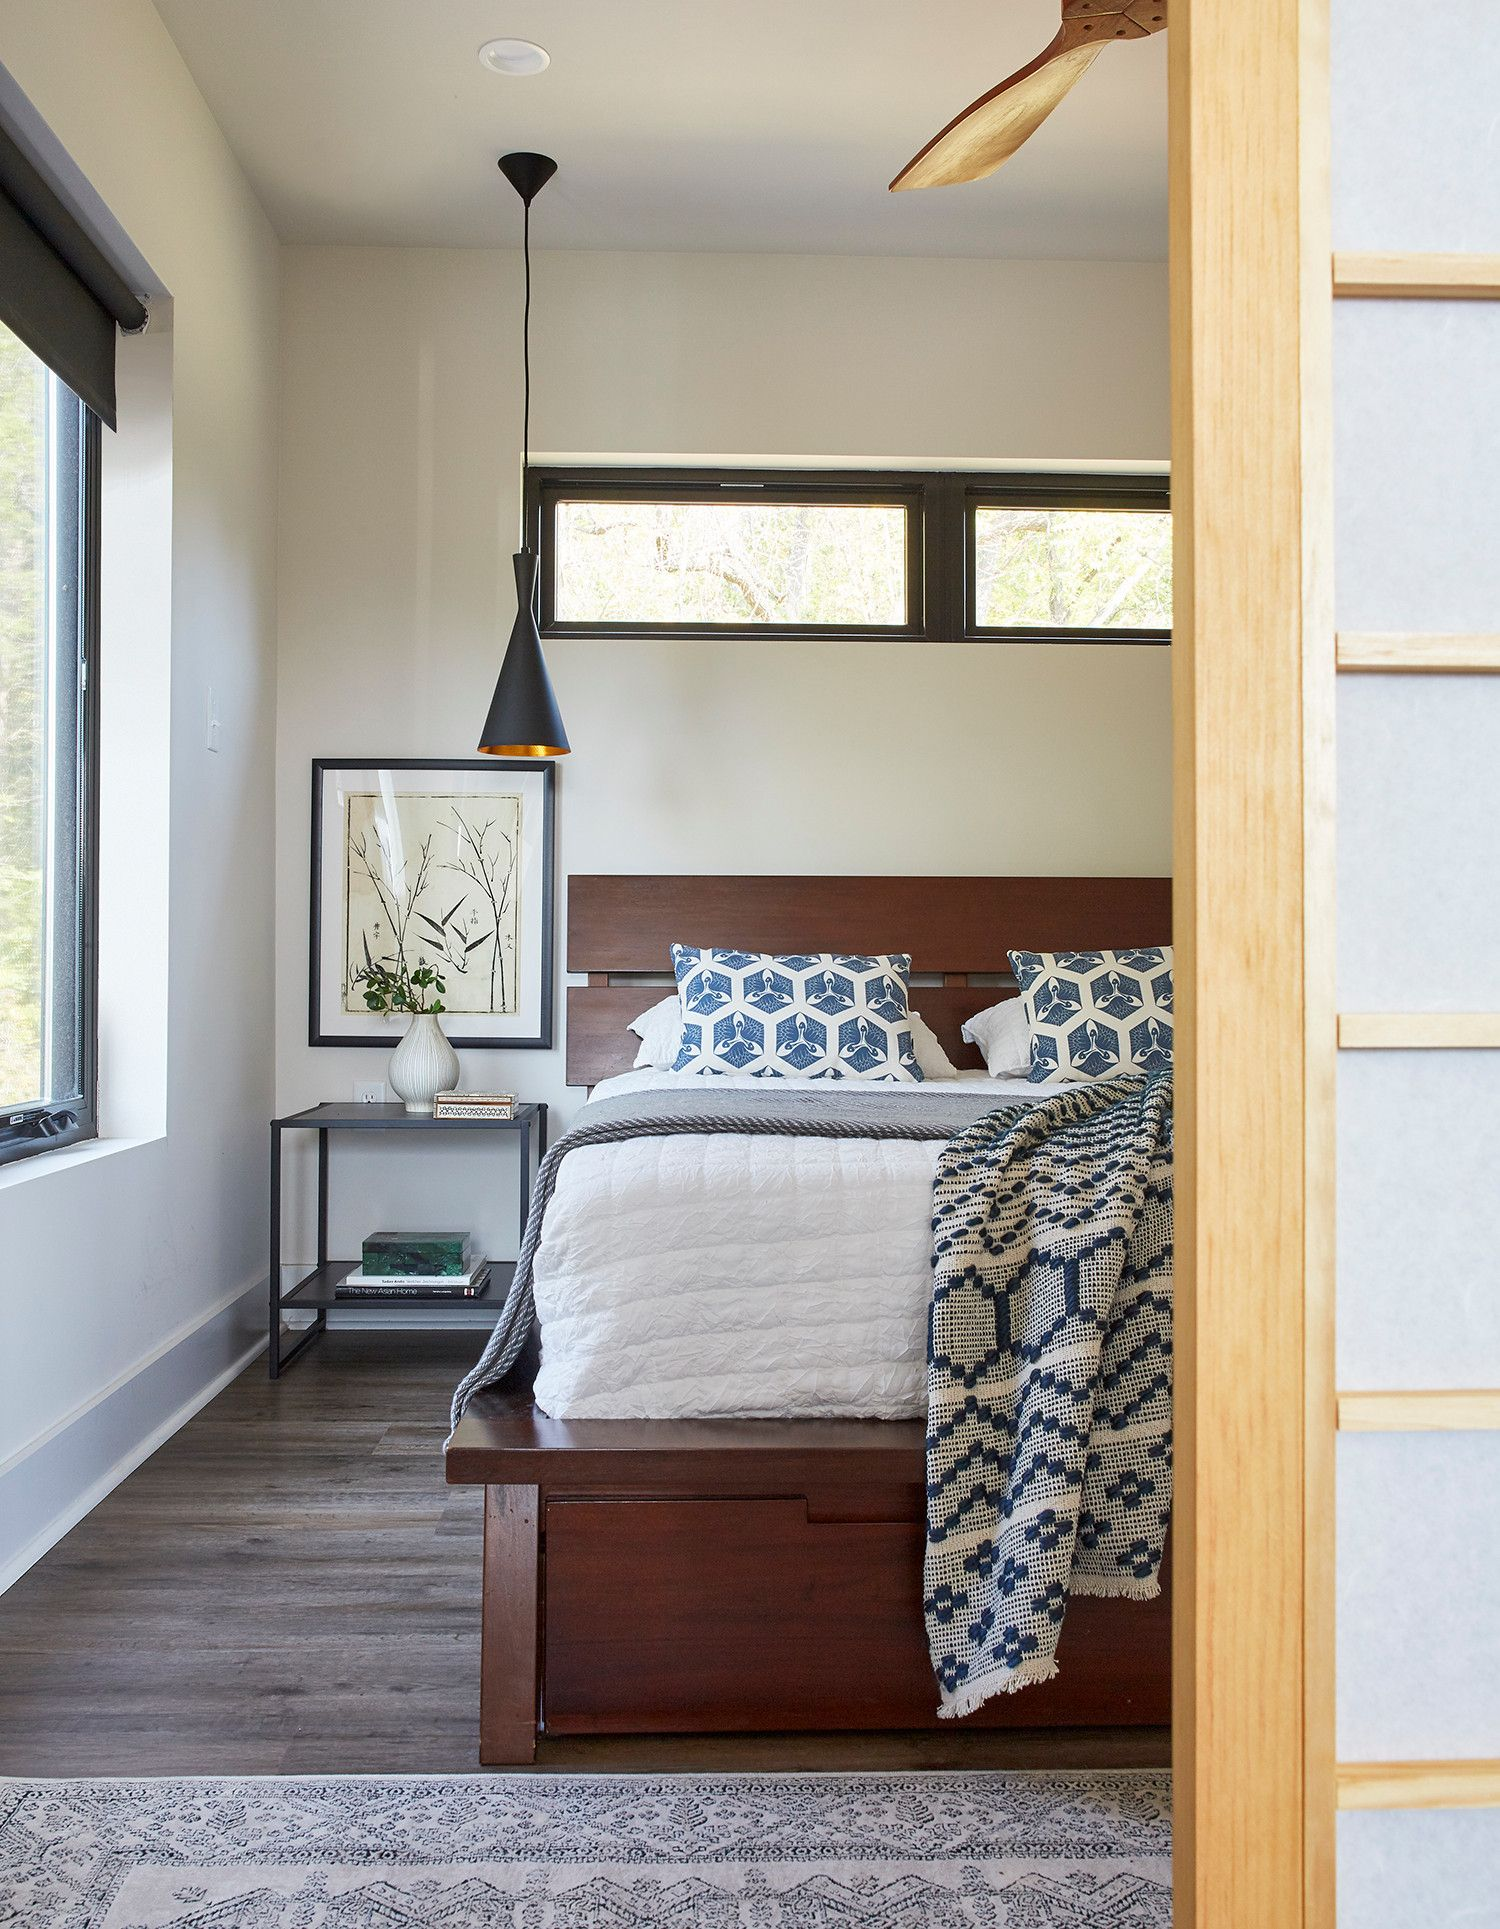 Dashing Tom Dixon pendant used as bedside lighting in the small urban bedroom with sliding door